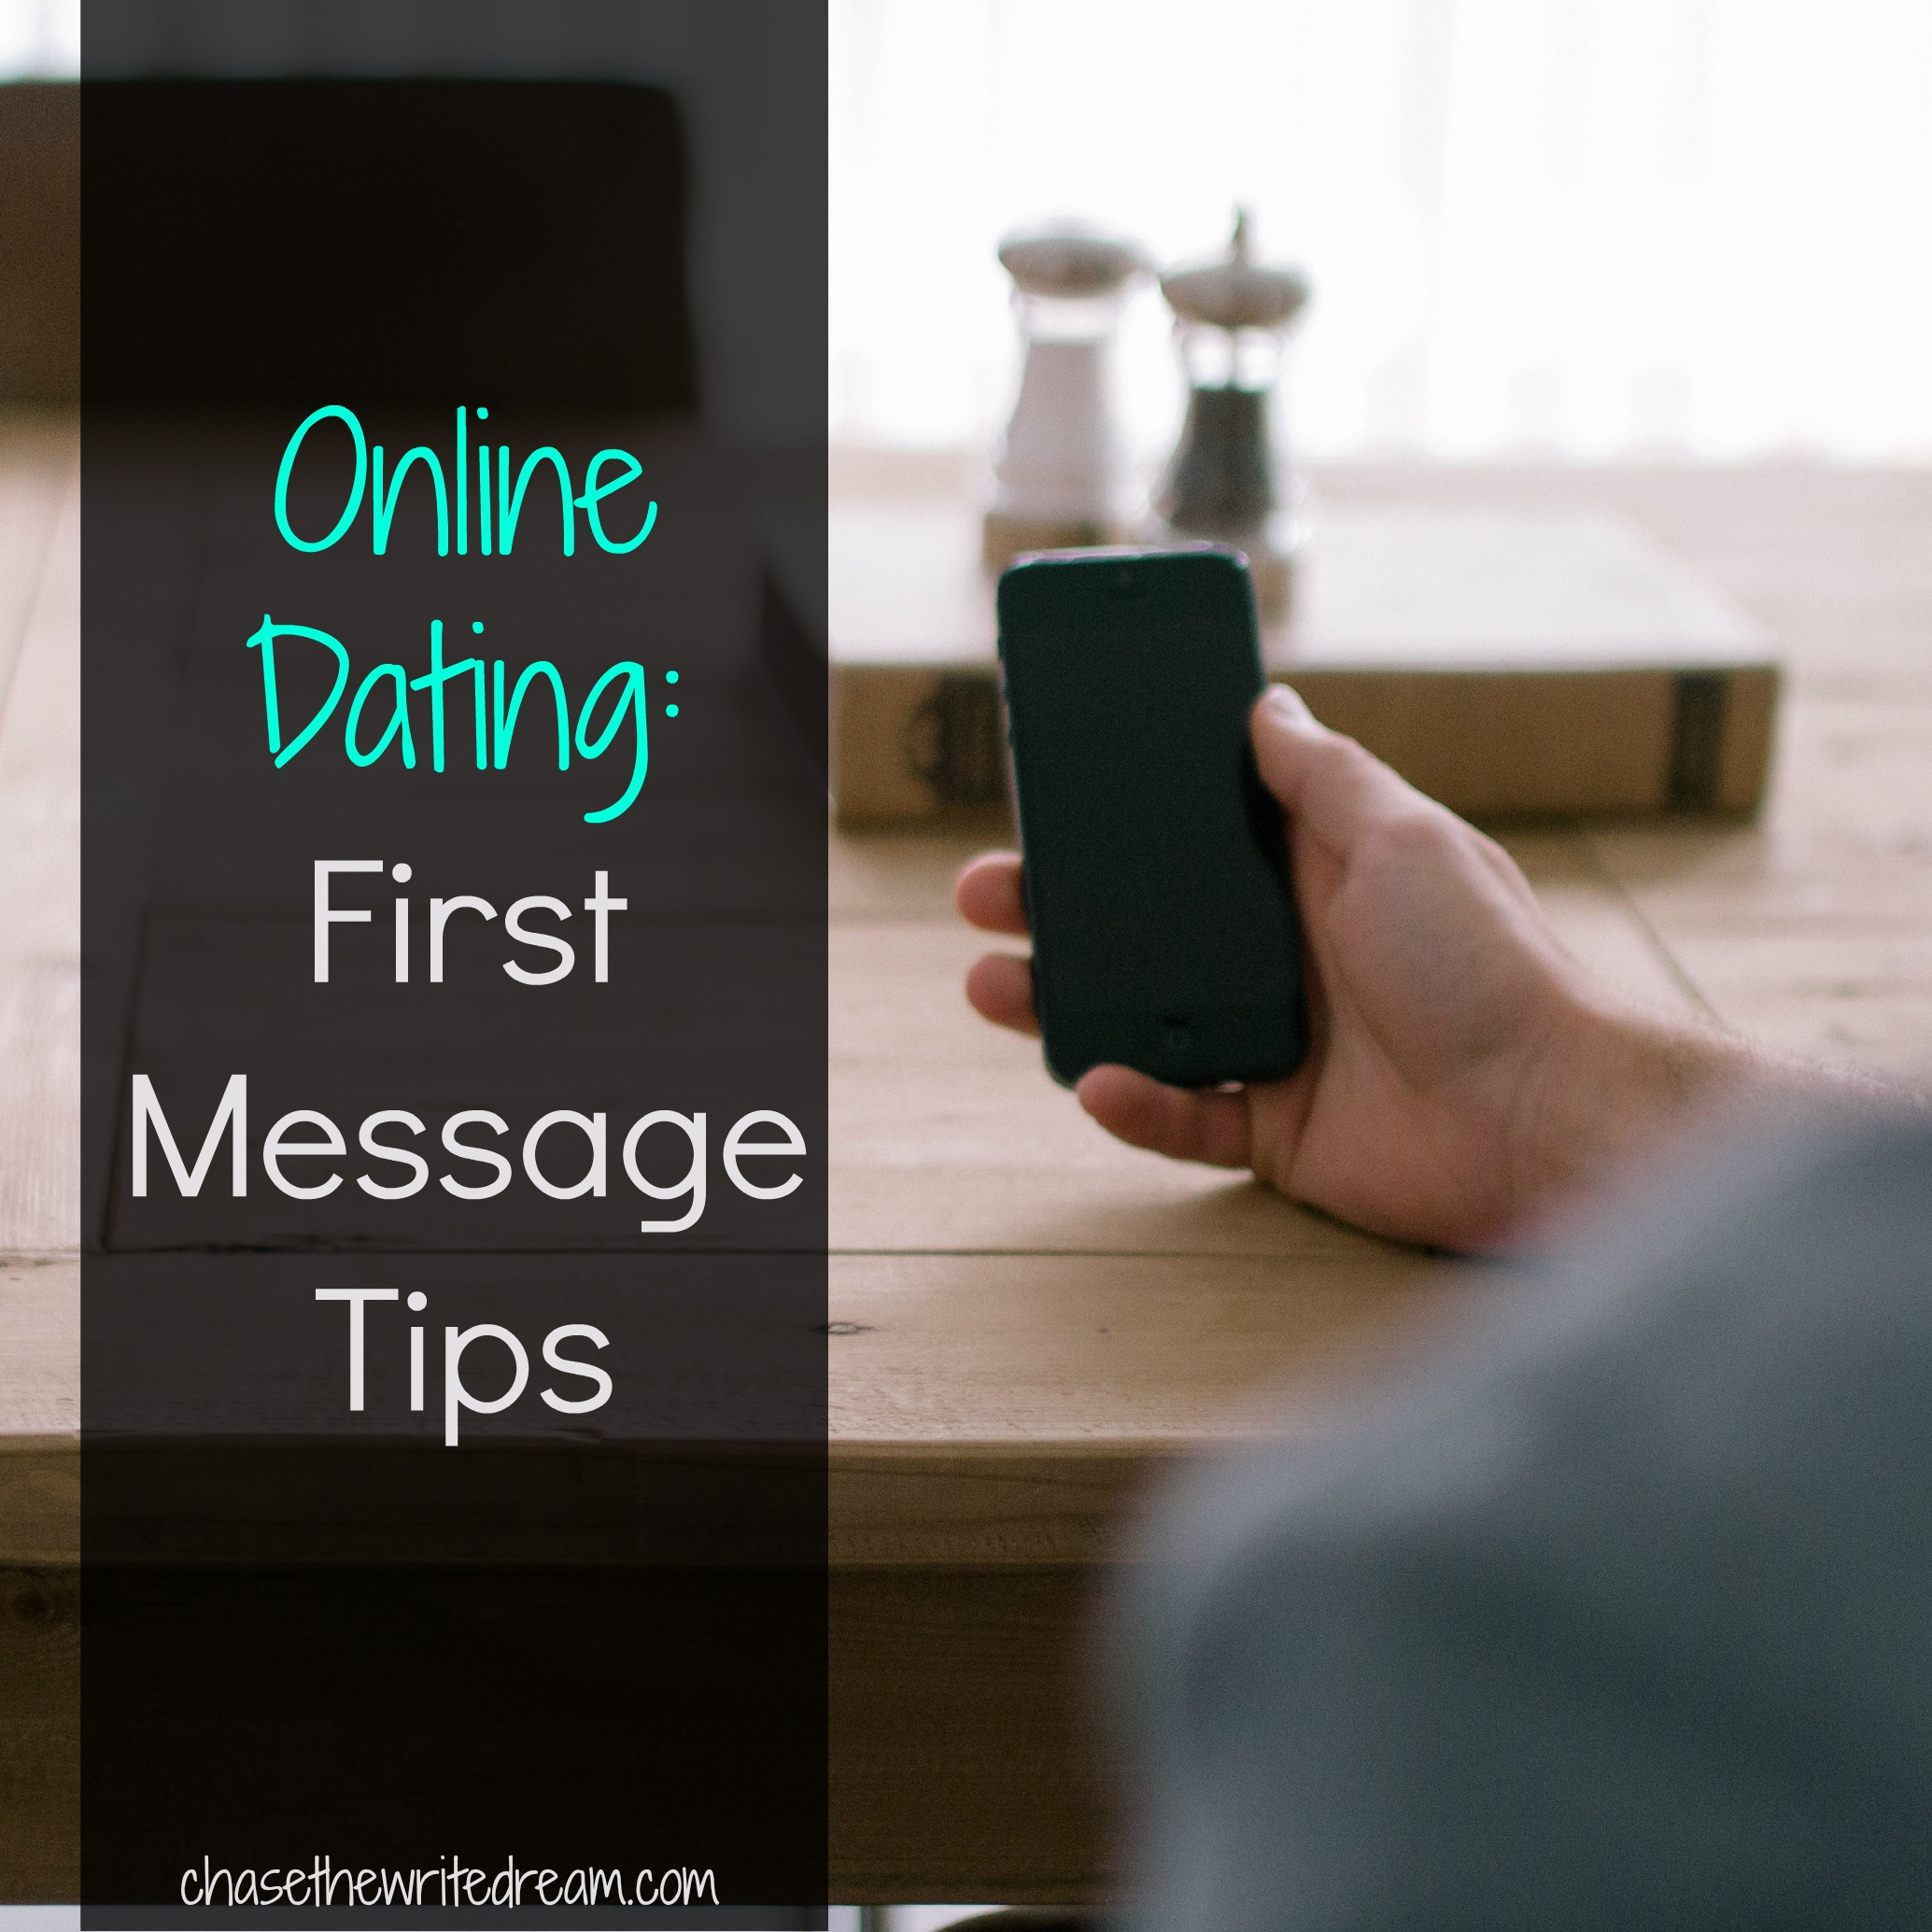 Read All Online Dating Tips For